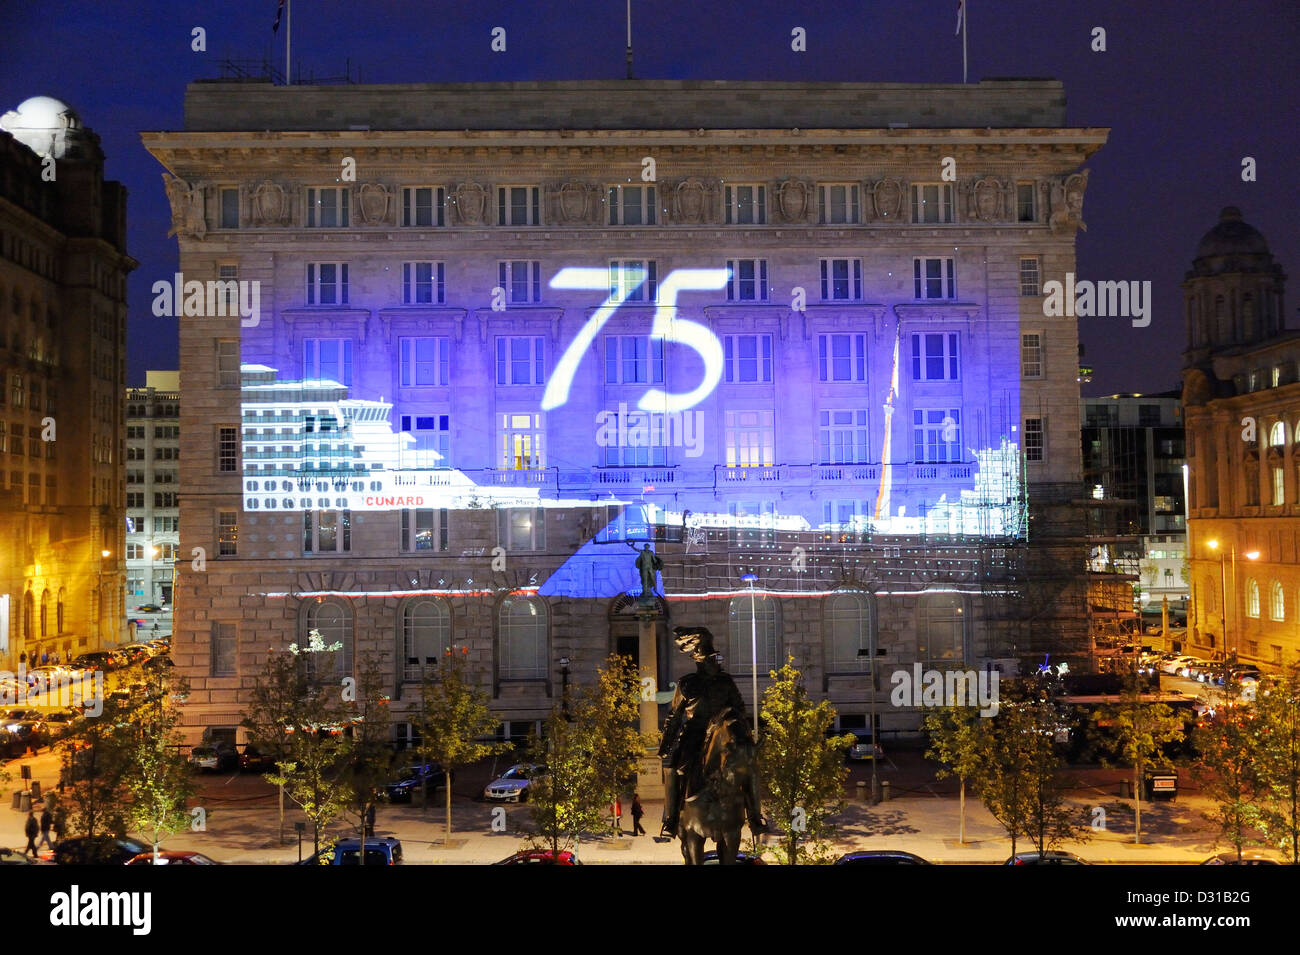 Images projected on the Cunard Building, Grade 2 listed building on Liverpools waterfront celebrating Cunards 75th. - Stock Image